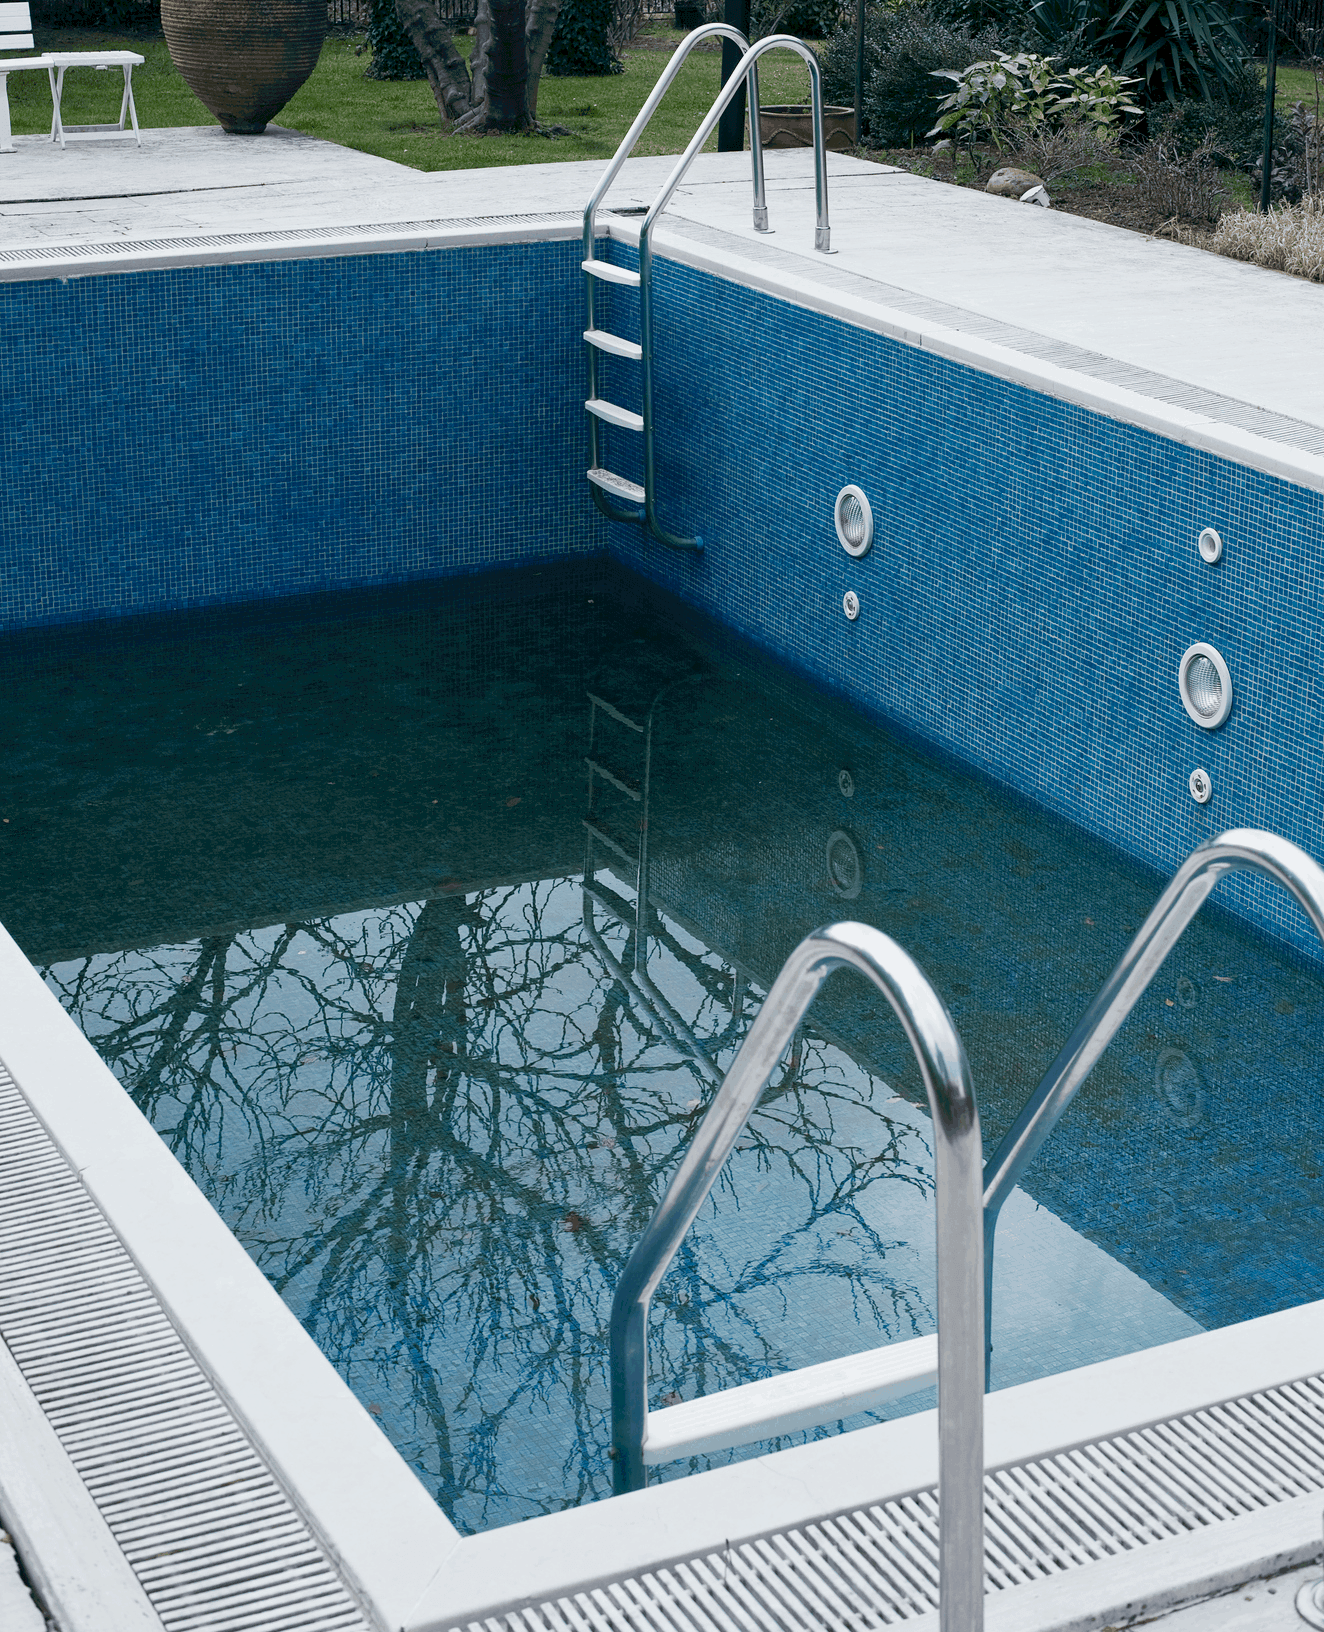 Pool leak detection McKinnon